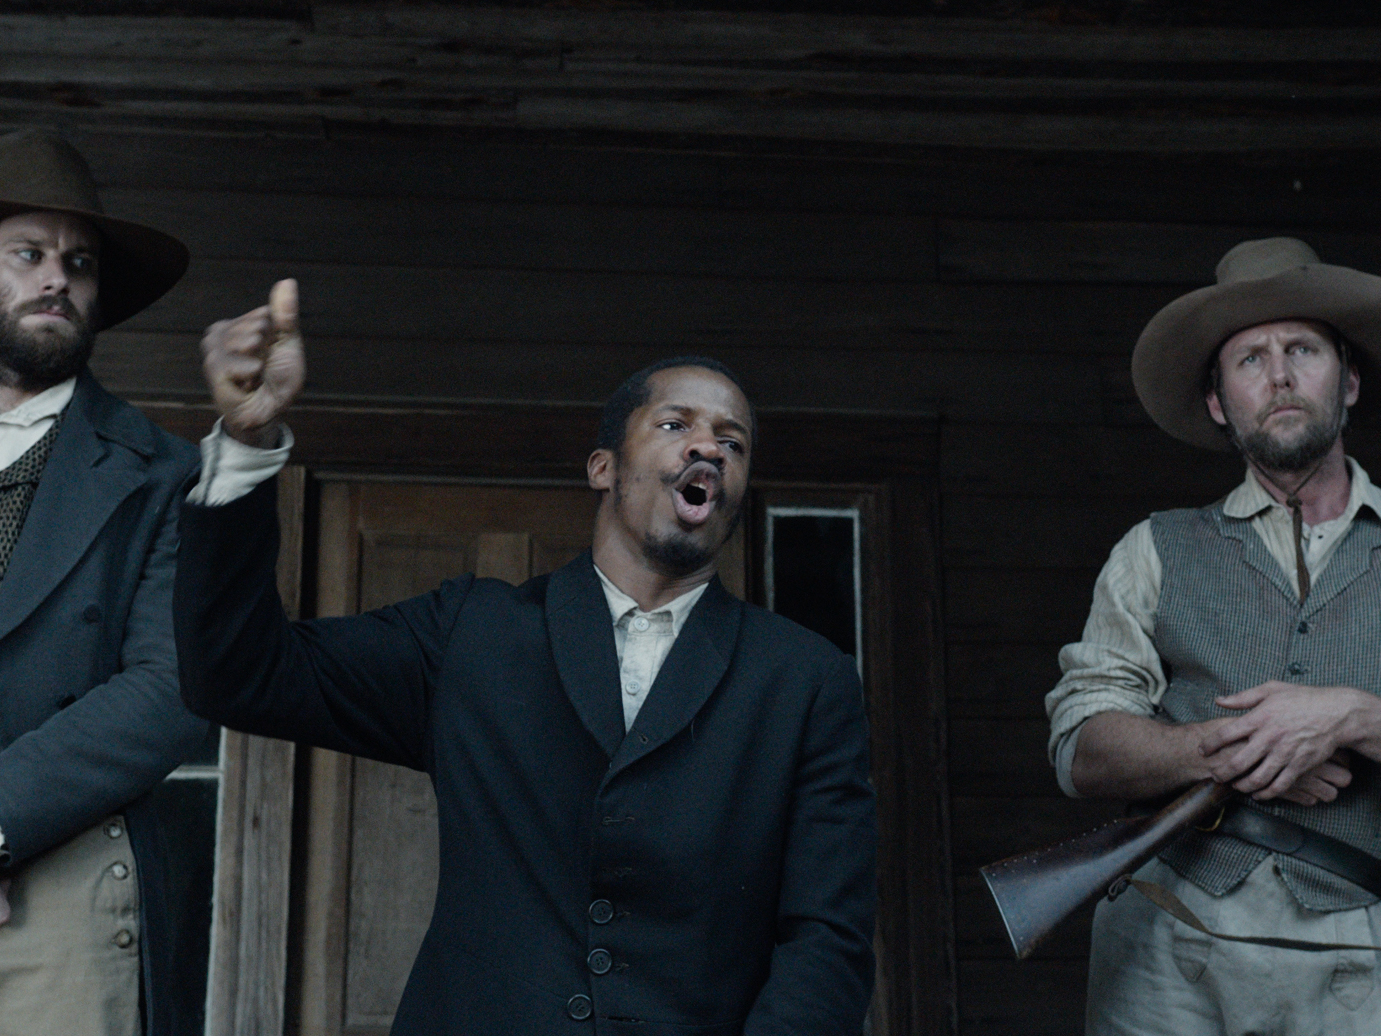 'The Birth of a Nation' worth seeing, despite Nate Parker scandal